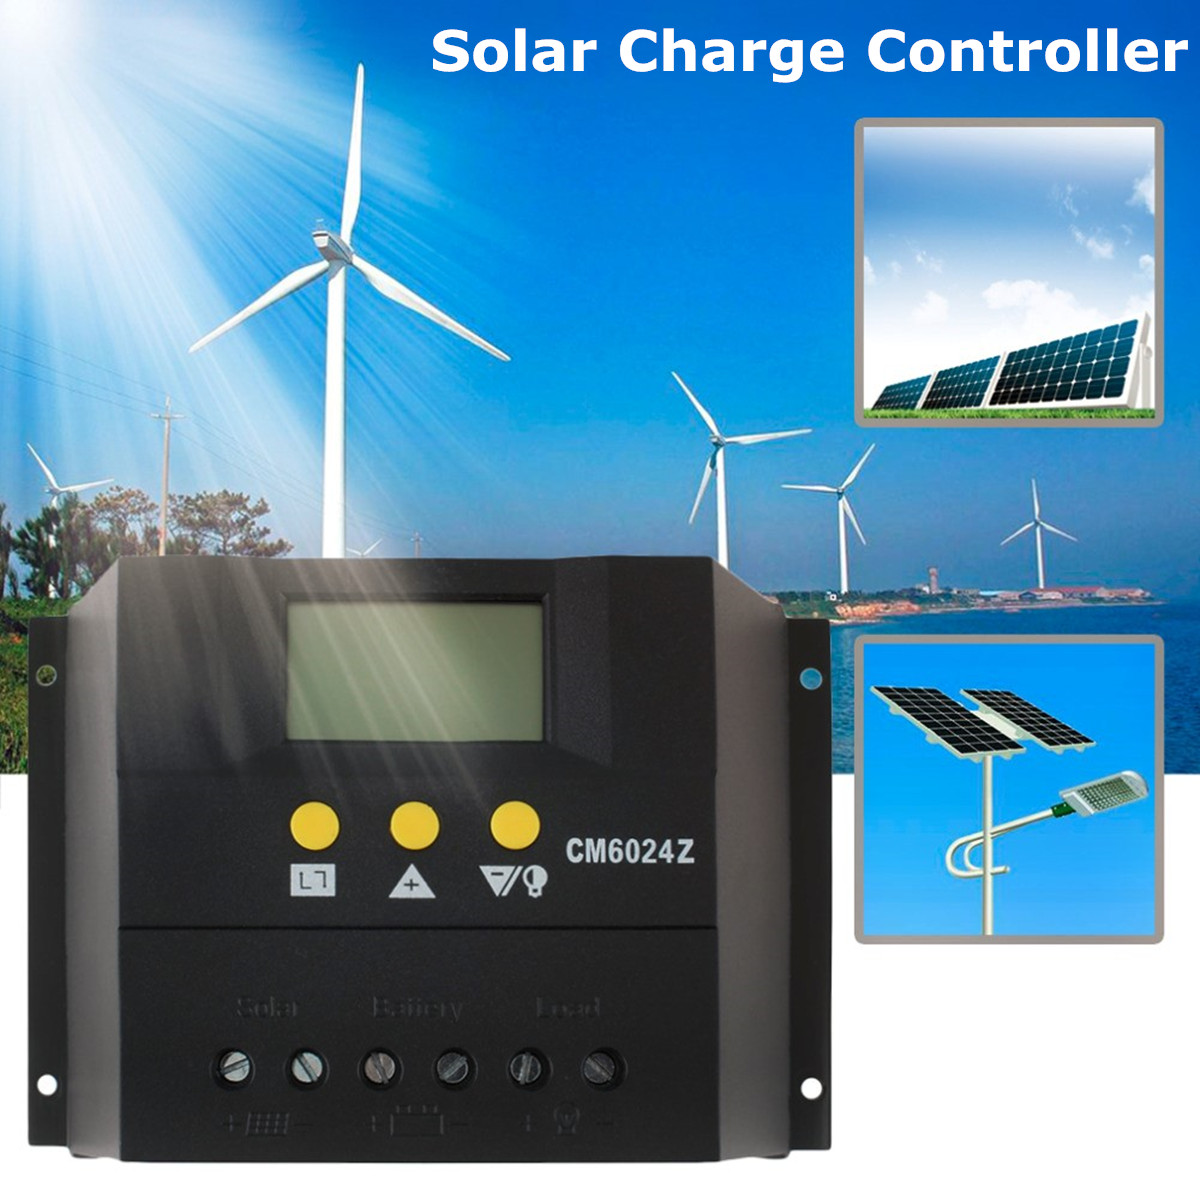 MAX PWM Charging Mode 12V 24V 1920W 80A Solar Charge Controller Auto PWM Battery Charger Regulator ABS Short-circuit Protection max short